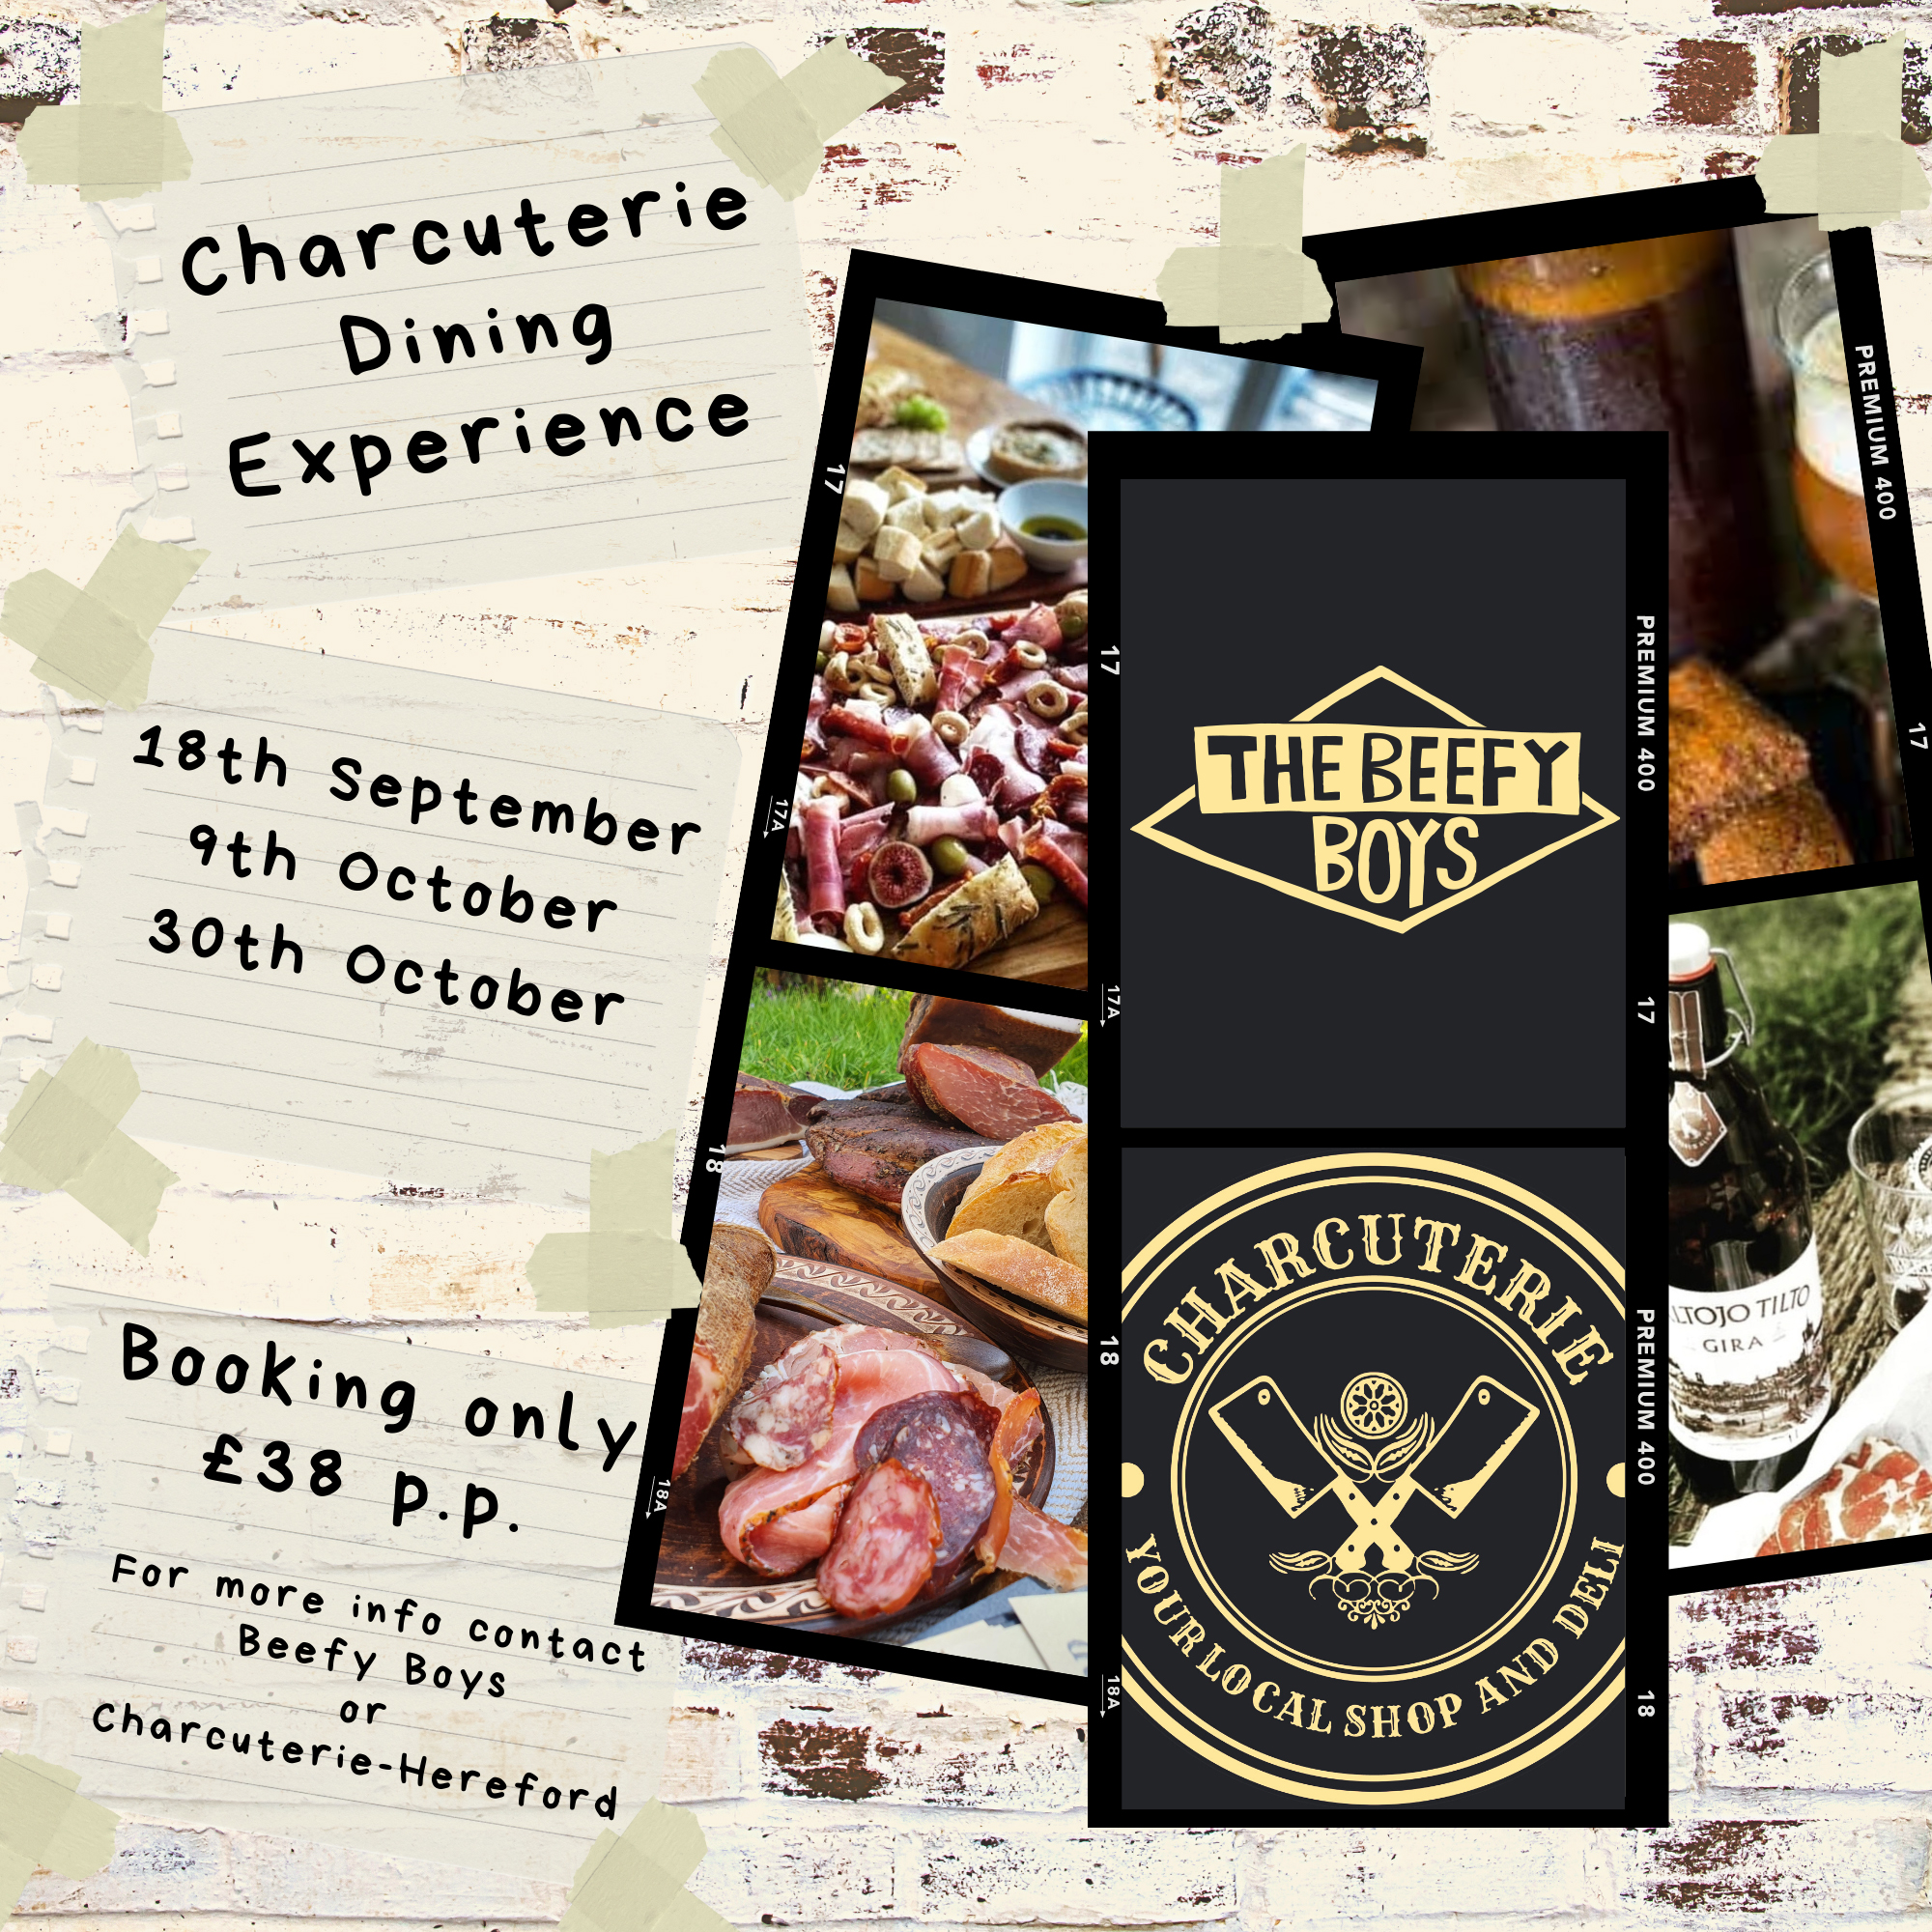 charcuterie dining experience